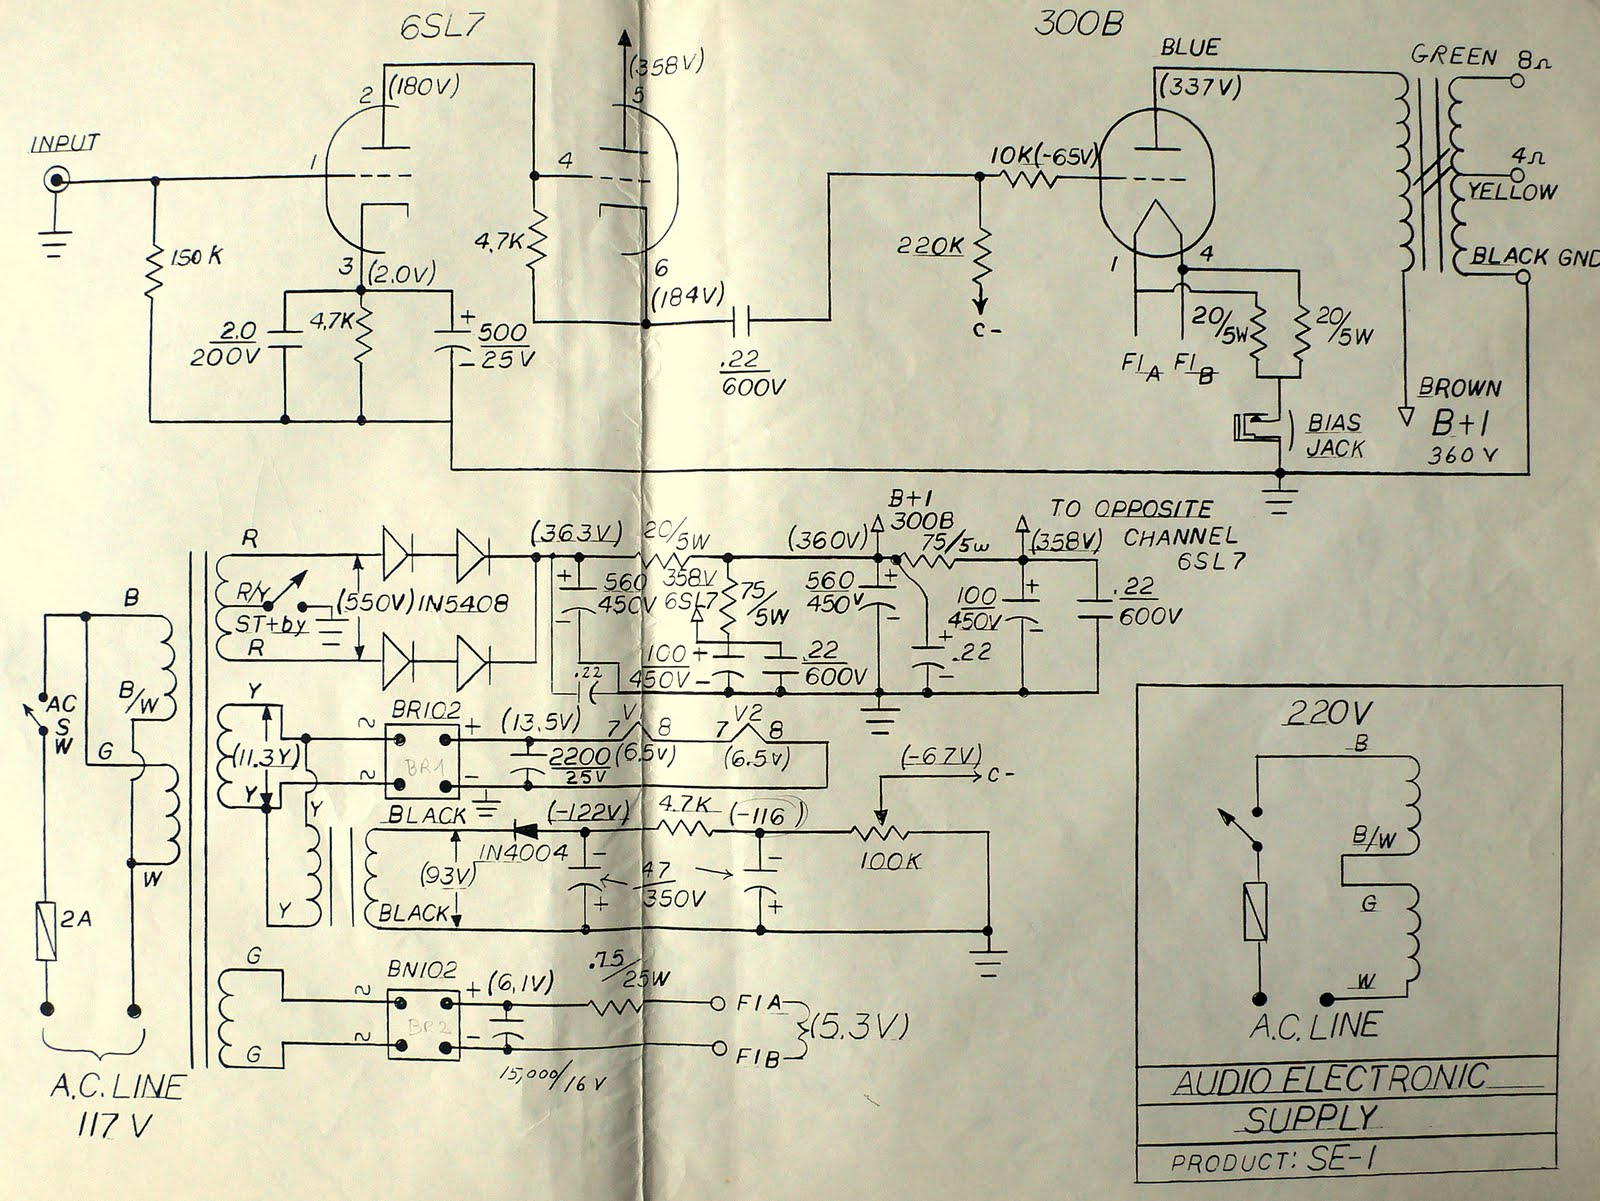 medium resolution of doctorjohn cheaptubeaudio audio reviews and more aes se 1 schematic and info